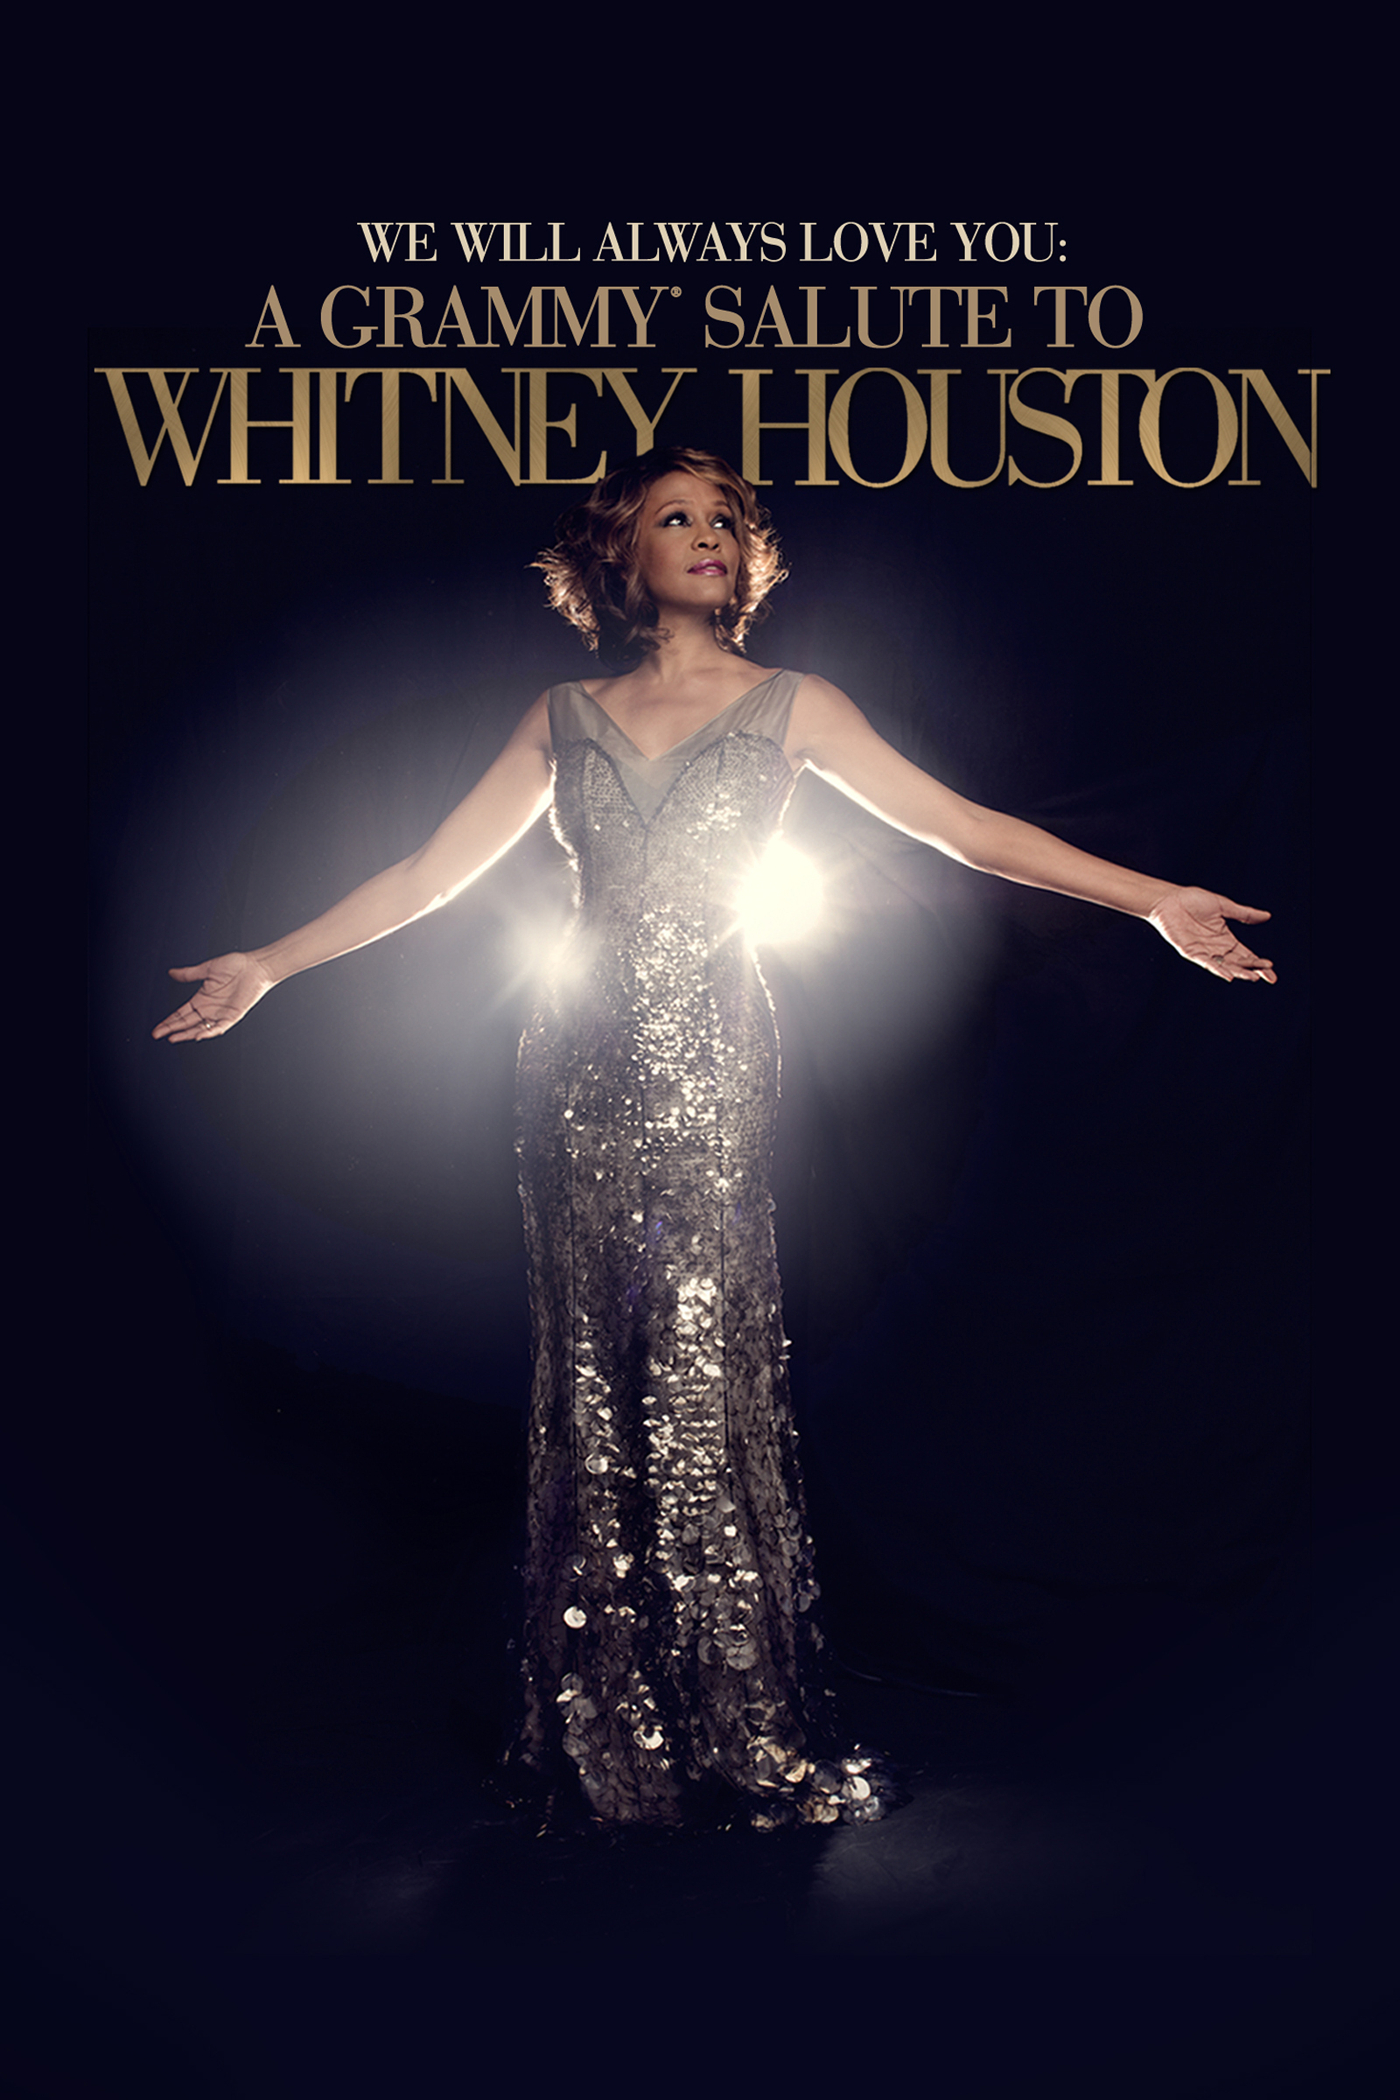 Whitney Houston – We Will Always Love You: A Grammy Salute to Whitney Houston (2012) [iTunes Movie - HD]